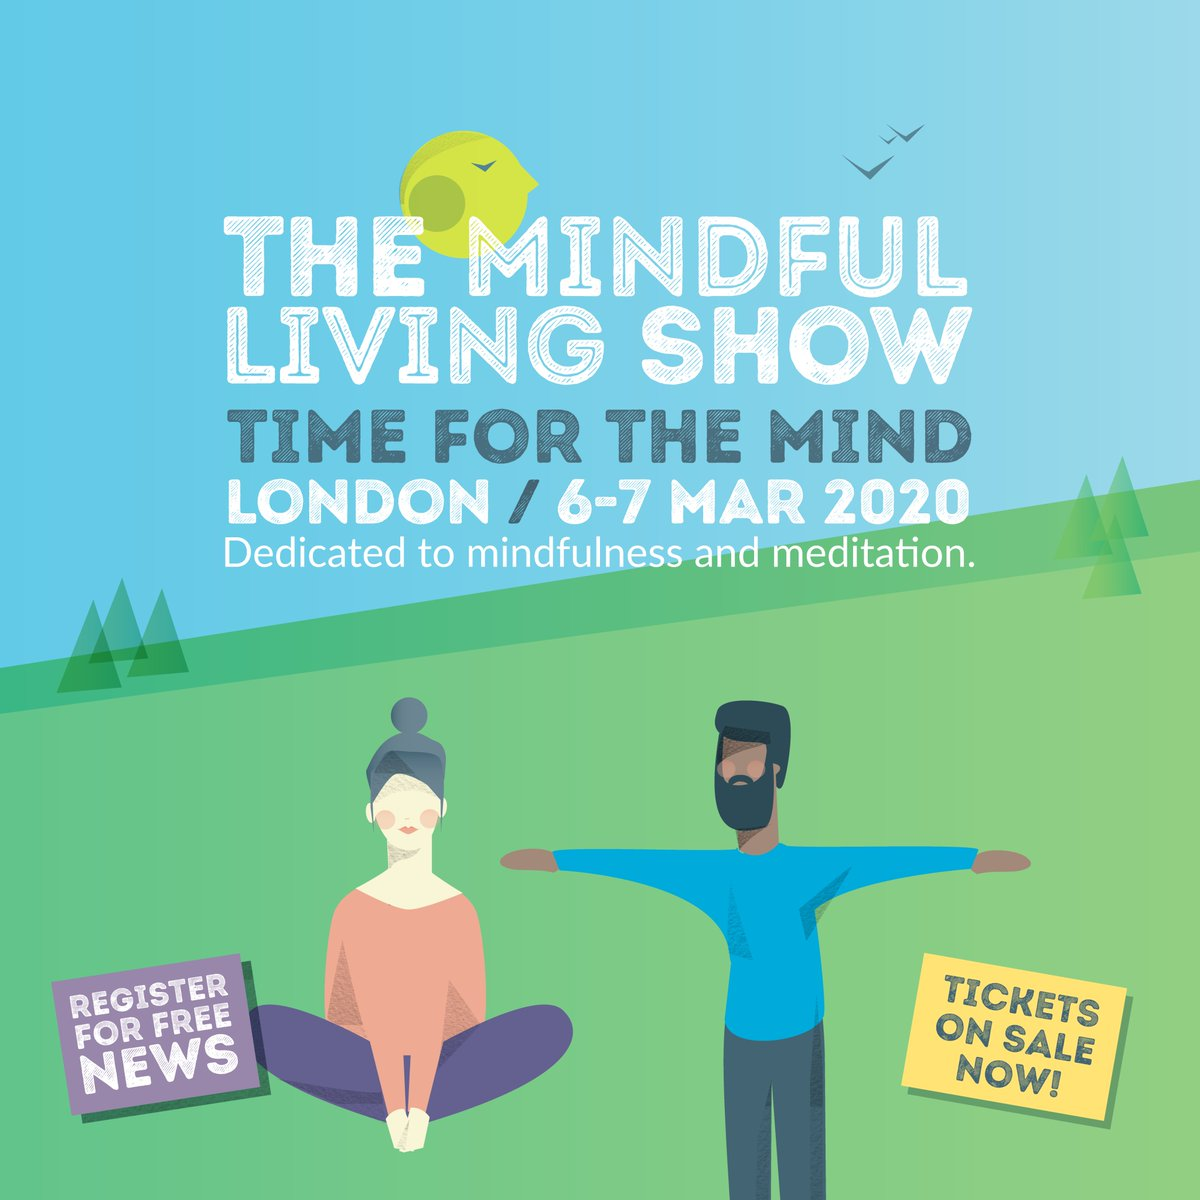 Life is happier when we make time for our mind 🧘 Join us at the wonderful @Mindful_Show to find out how and get 10% discount with code MLSS2108 mindfullivingshow.com #TimeForTheMind